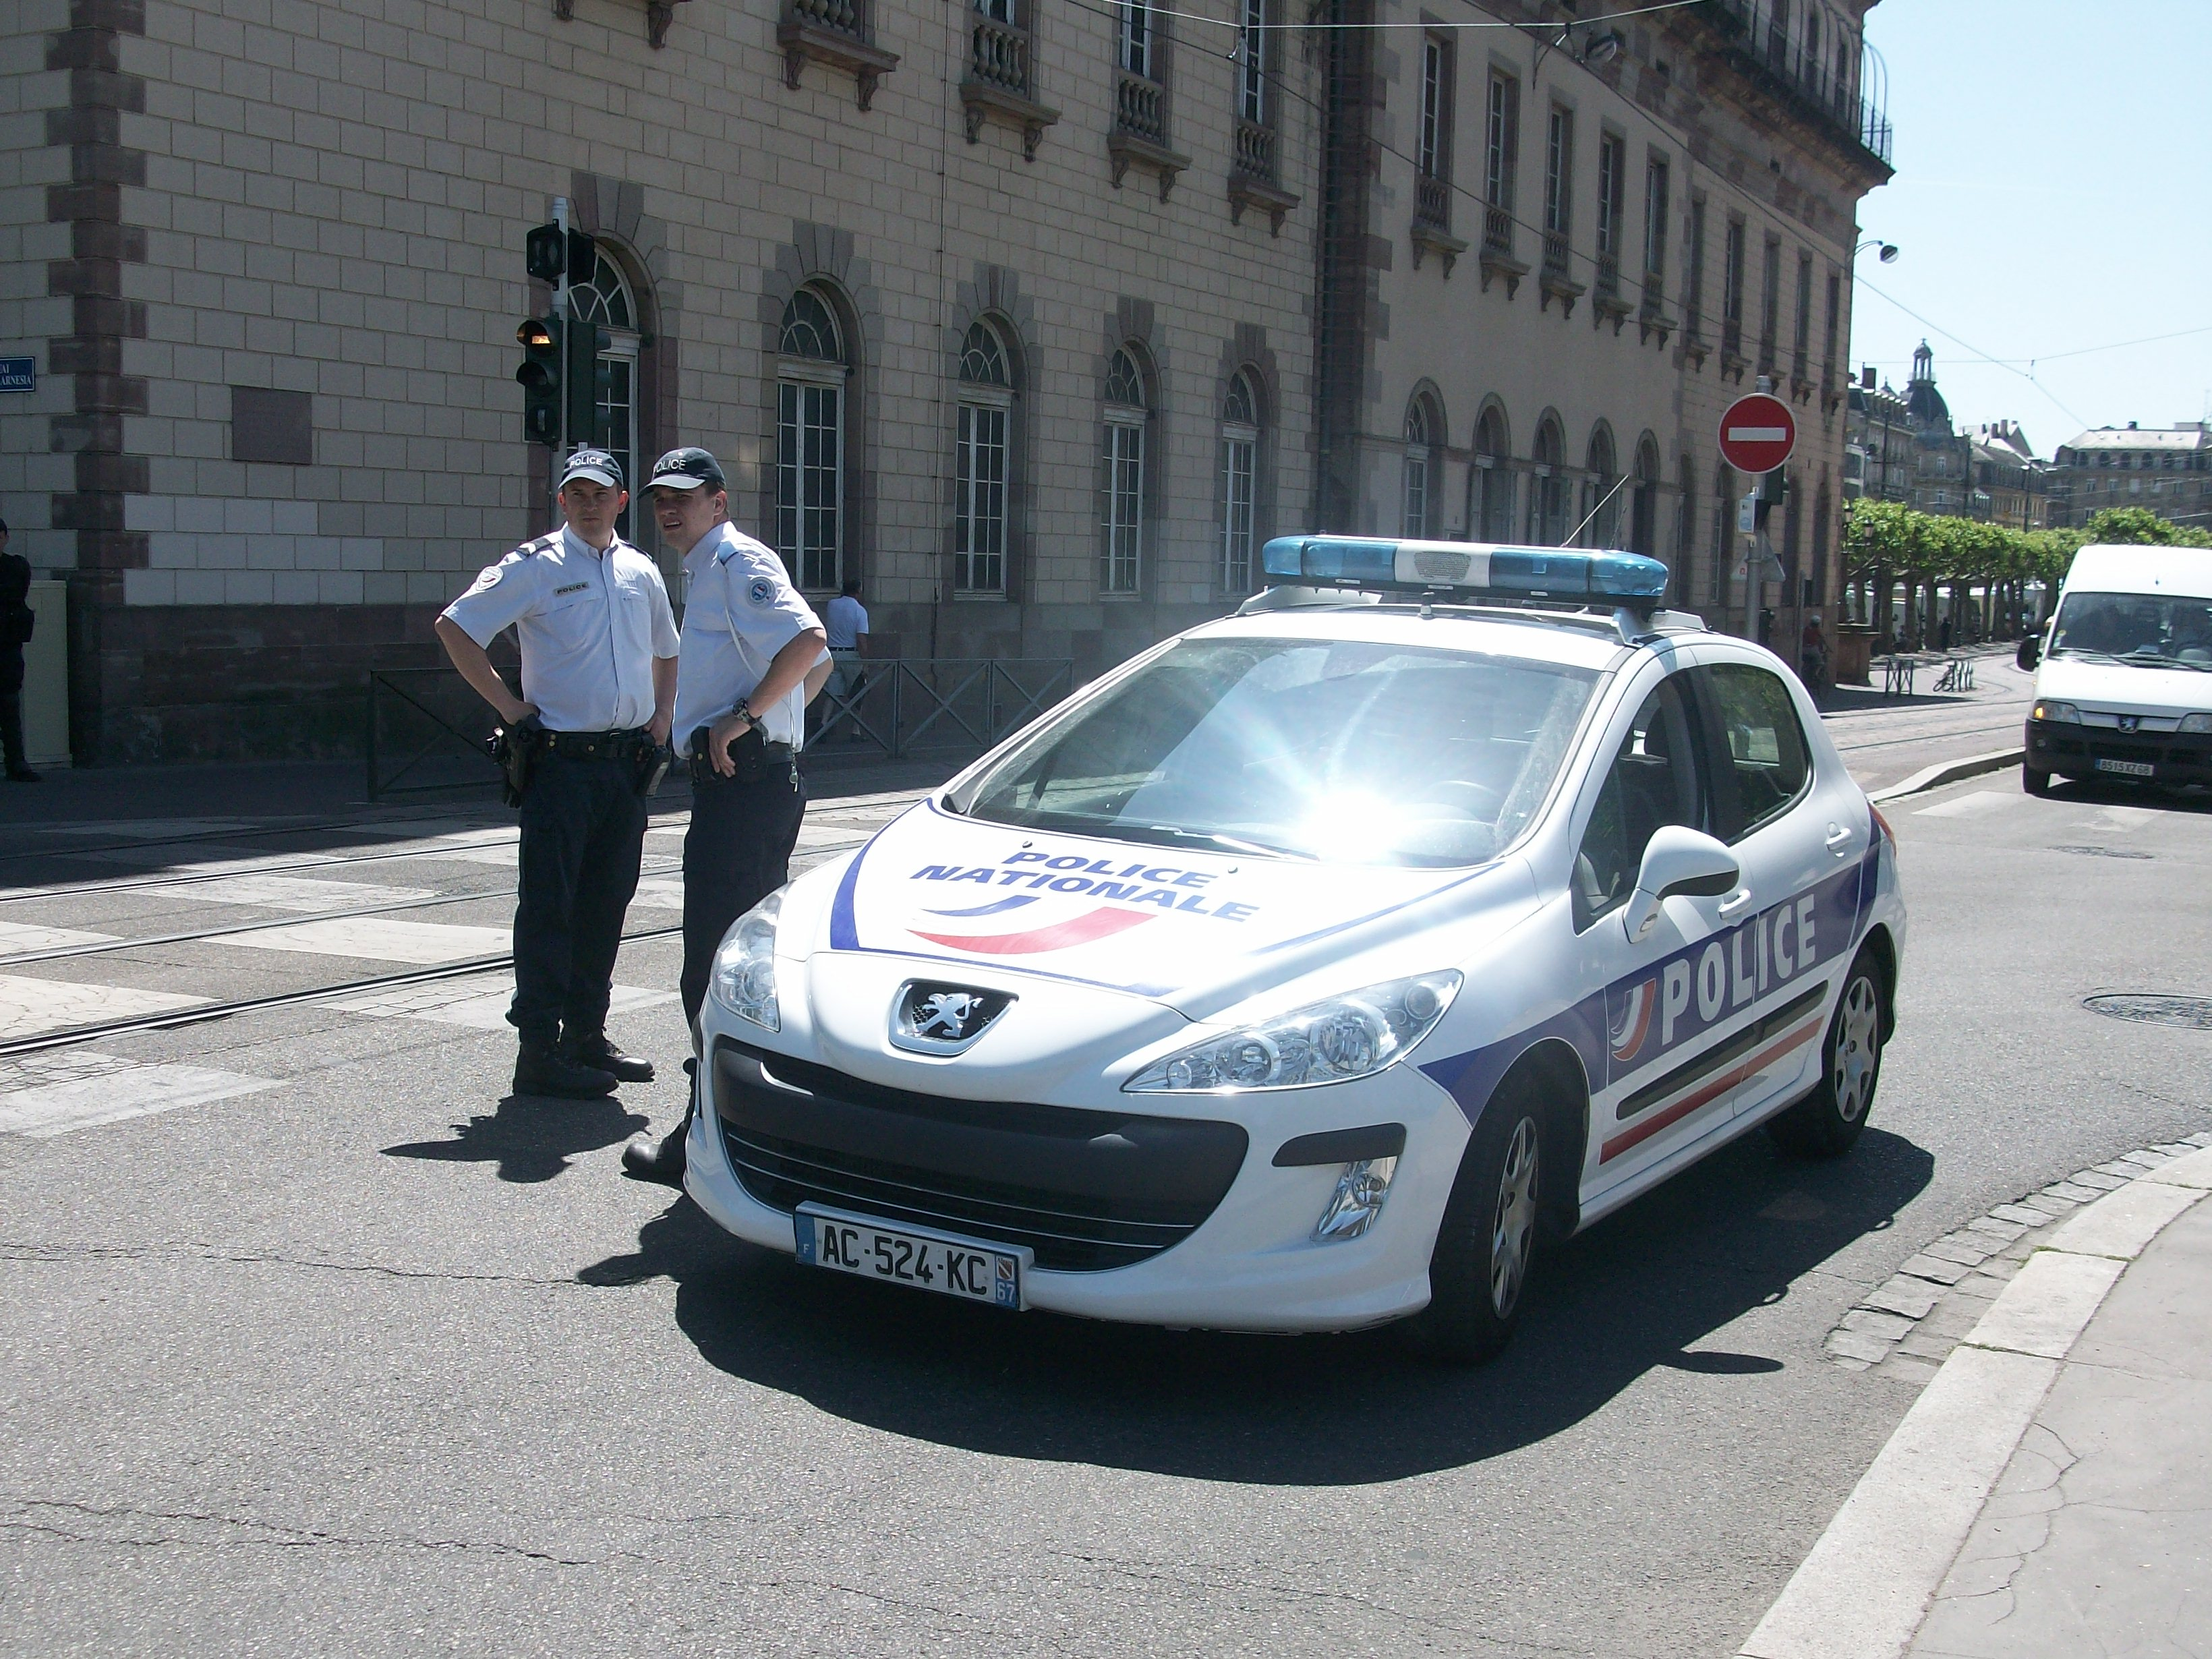 Description peugeot 307 police nationale strasbourg2011